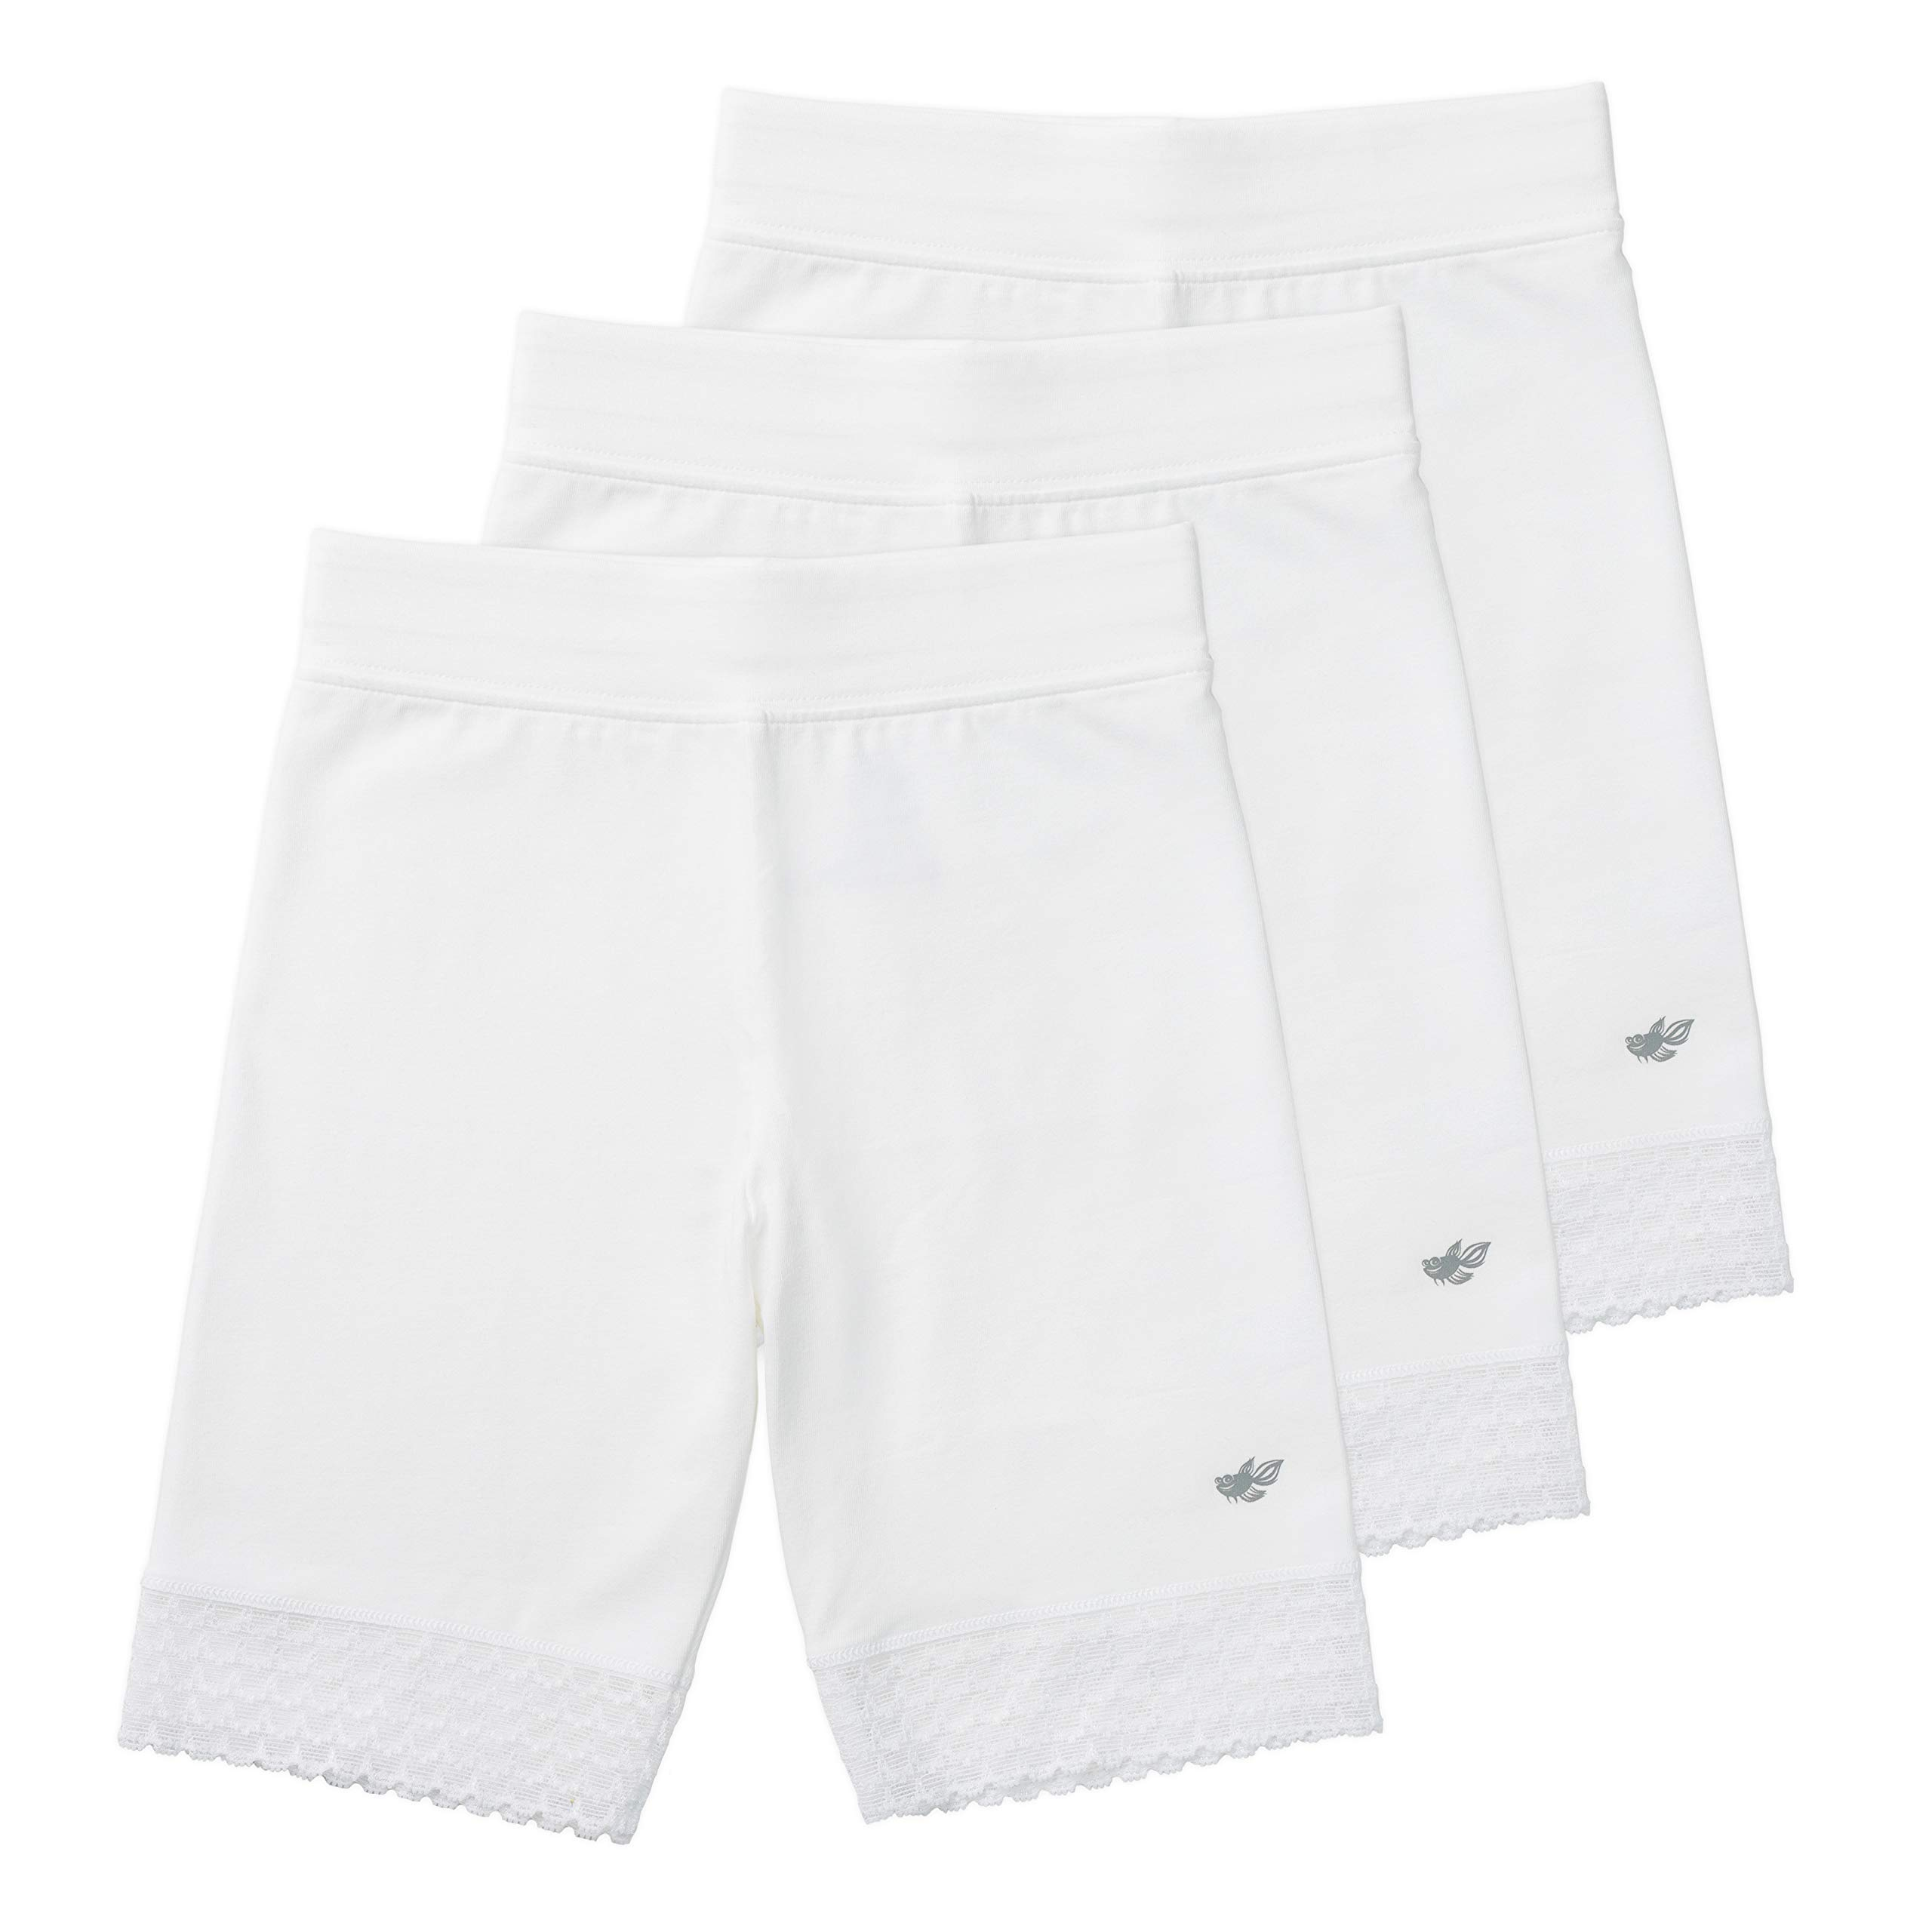 Modest 4 Pairs Of Age 3-6 Months Shorts Baby & Toddler Clothing Bottoms Shorts Bundle